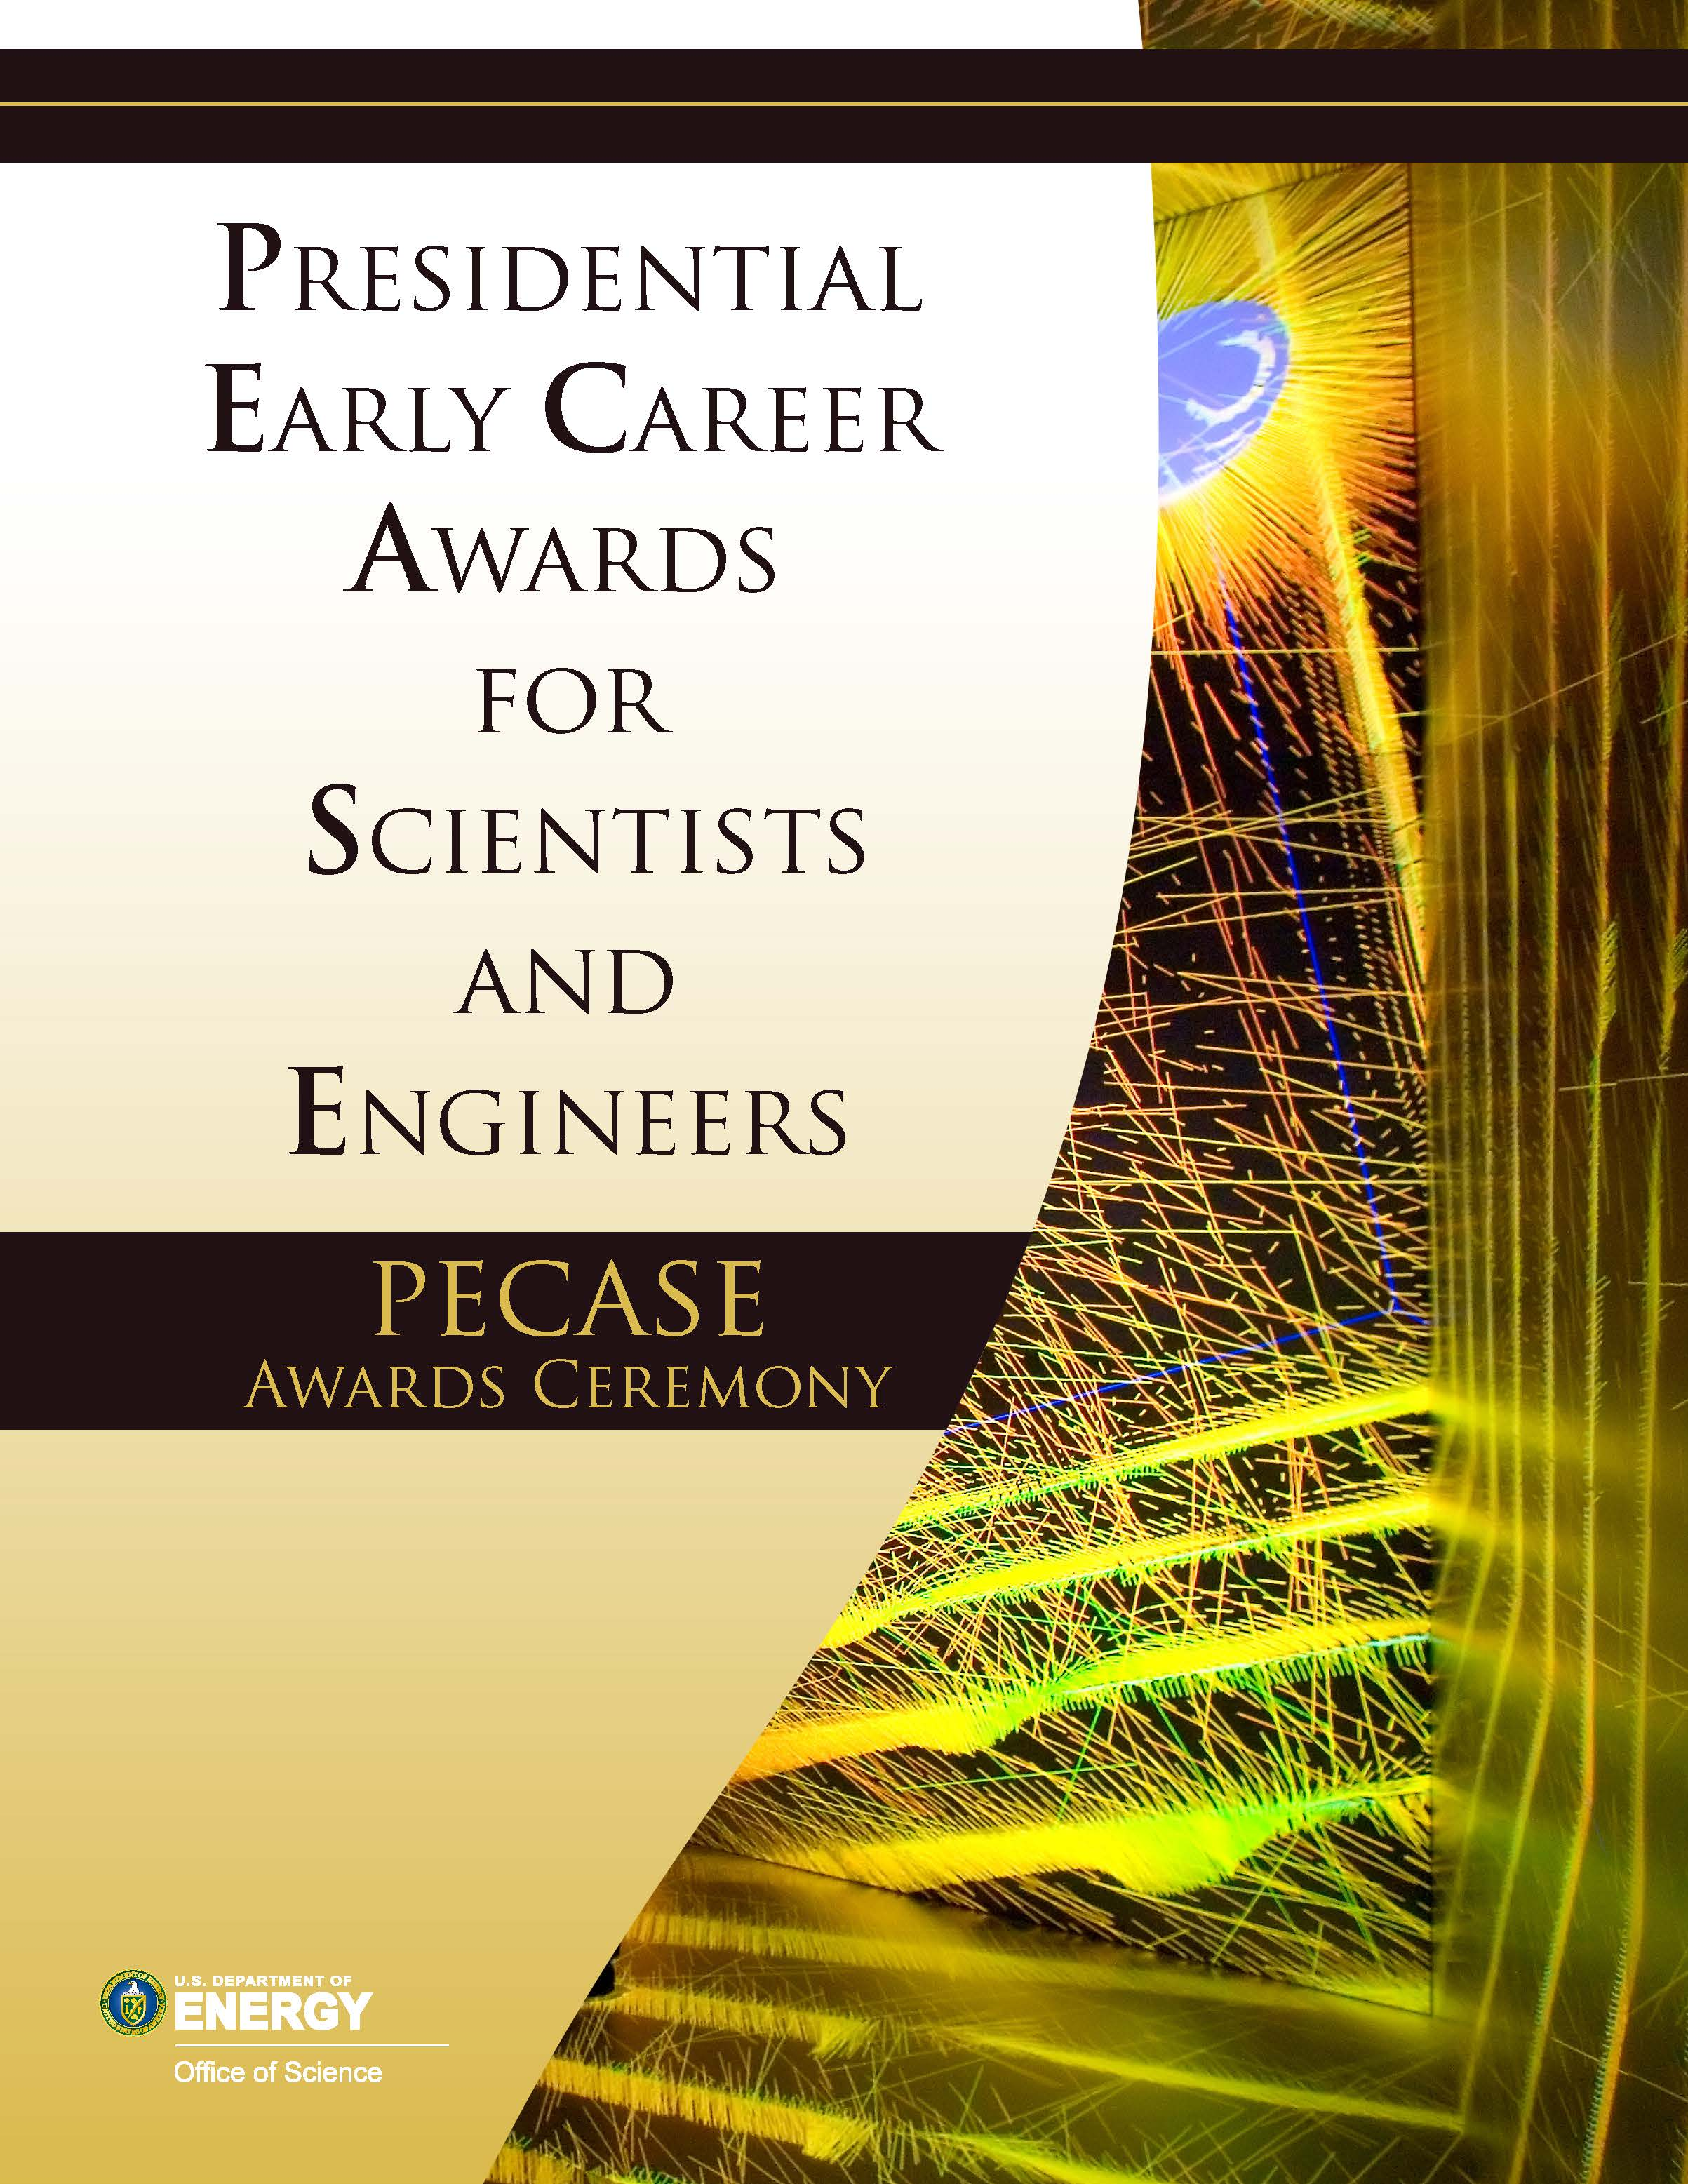 Presidential Early Career Awards for Scientists and Engineers (PECASE) Awards Ceremony, Department of Energy, Office of Science